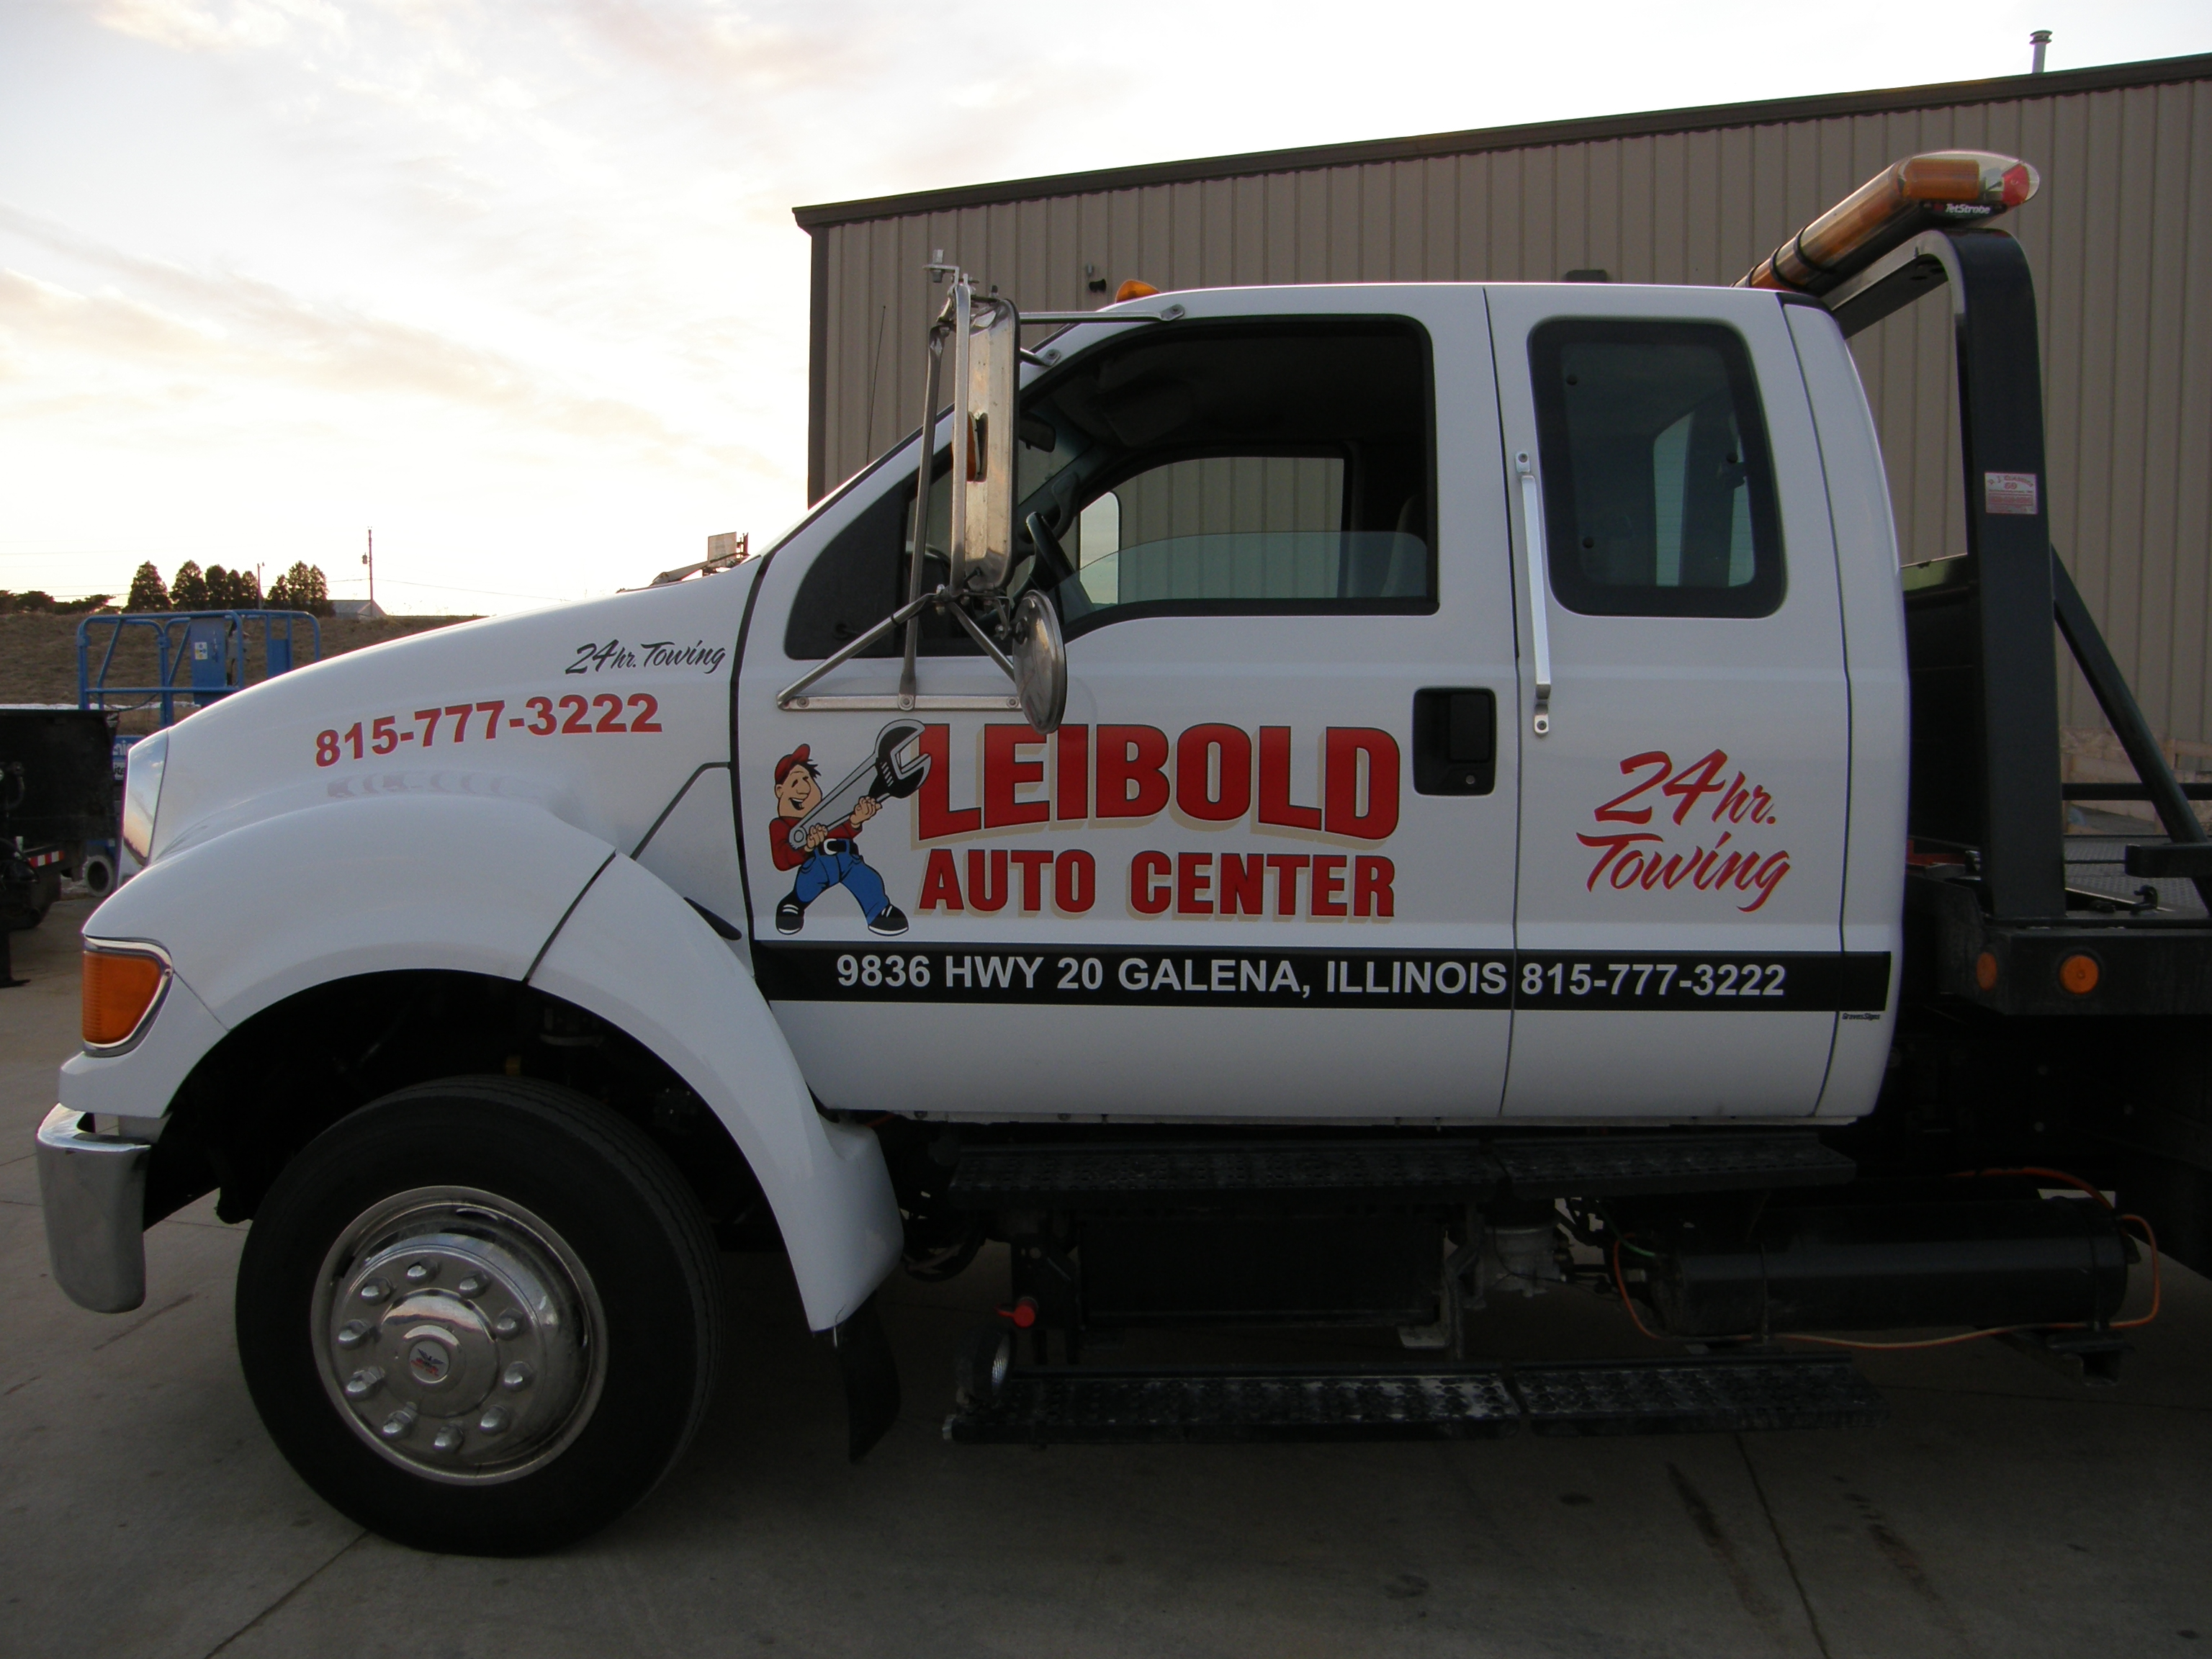 Leibold Service Center